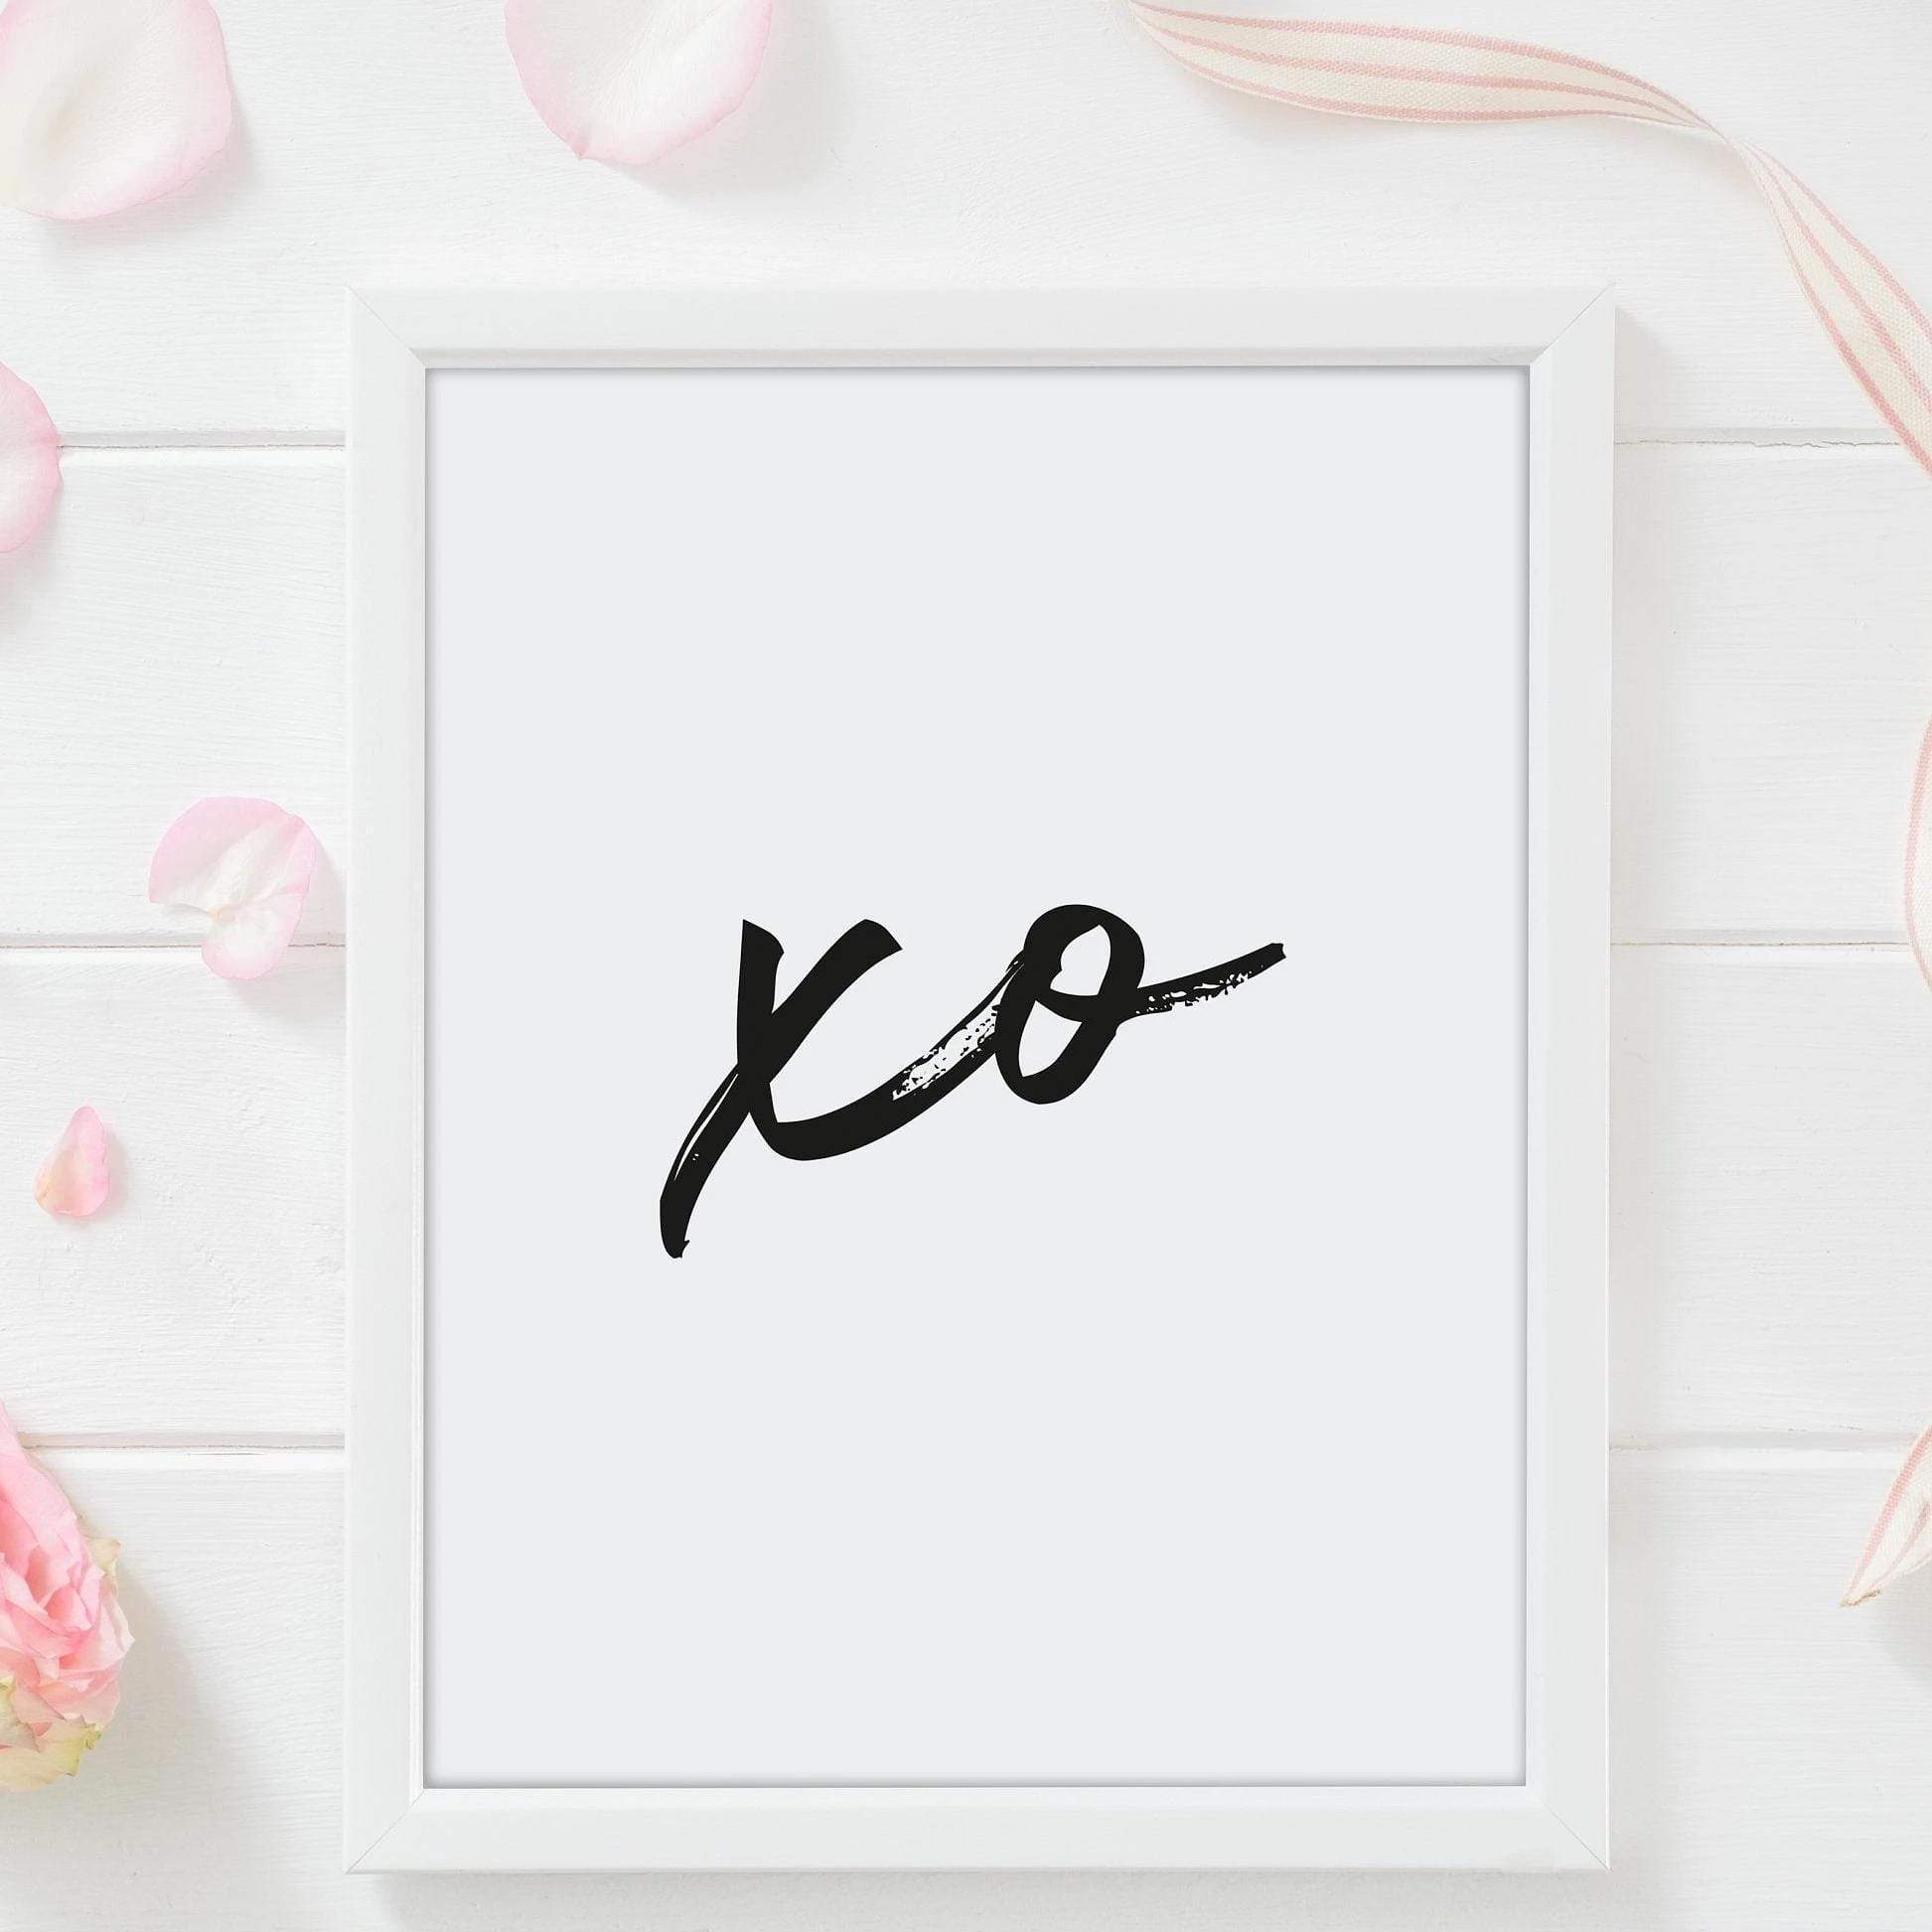 Leanne & Co. Digital Print Hugs and Kisses Print